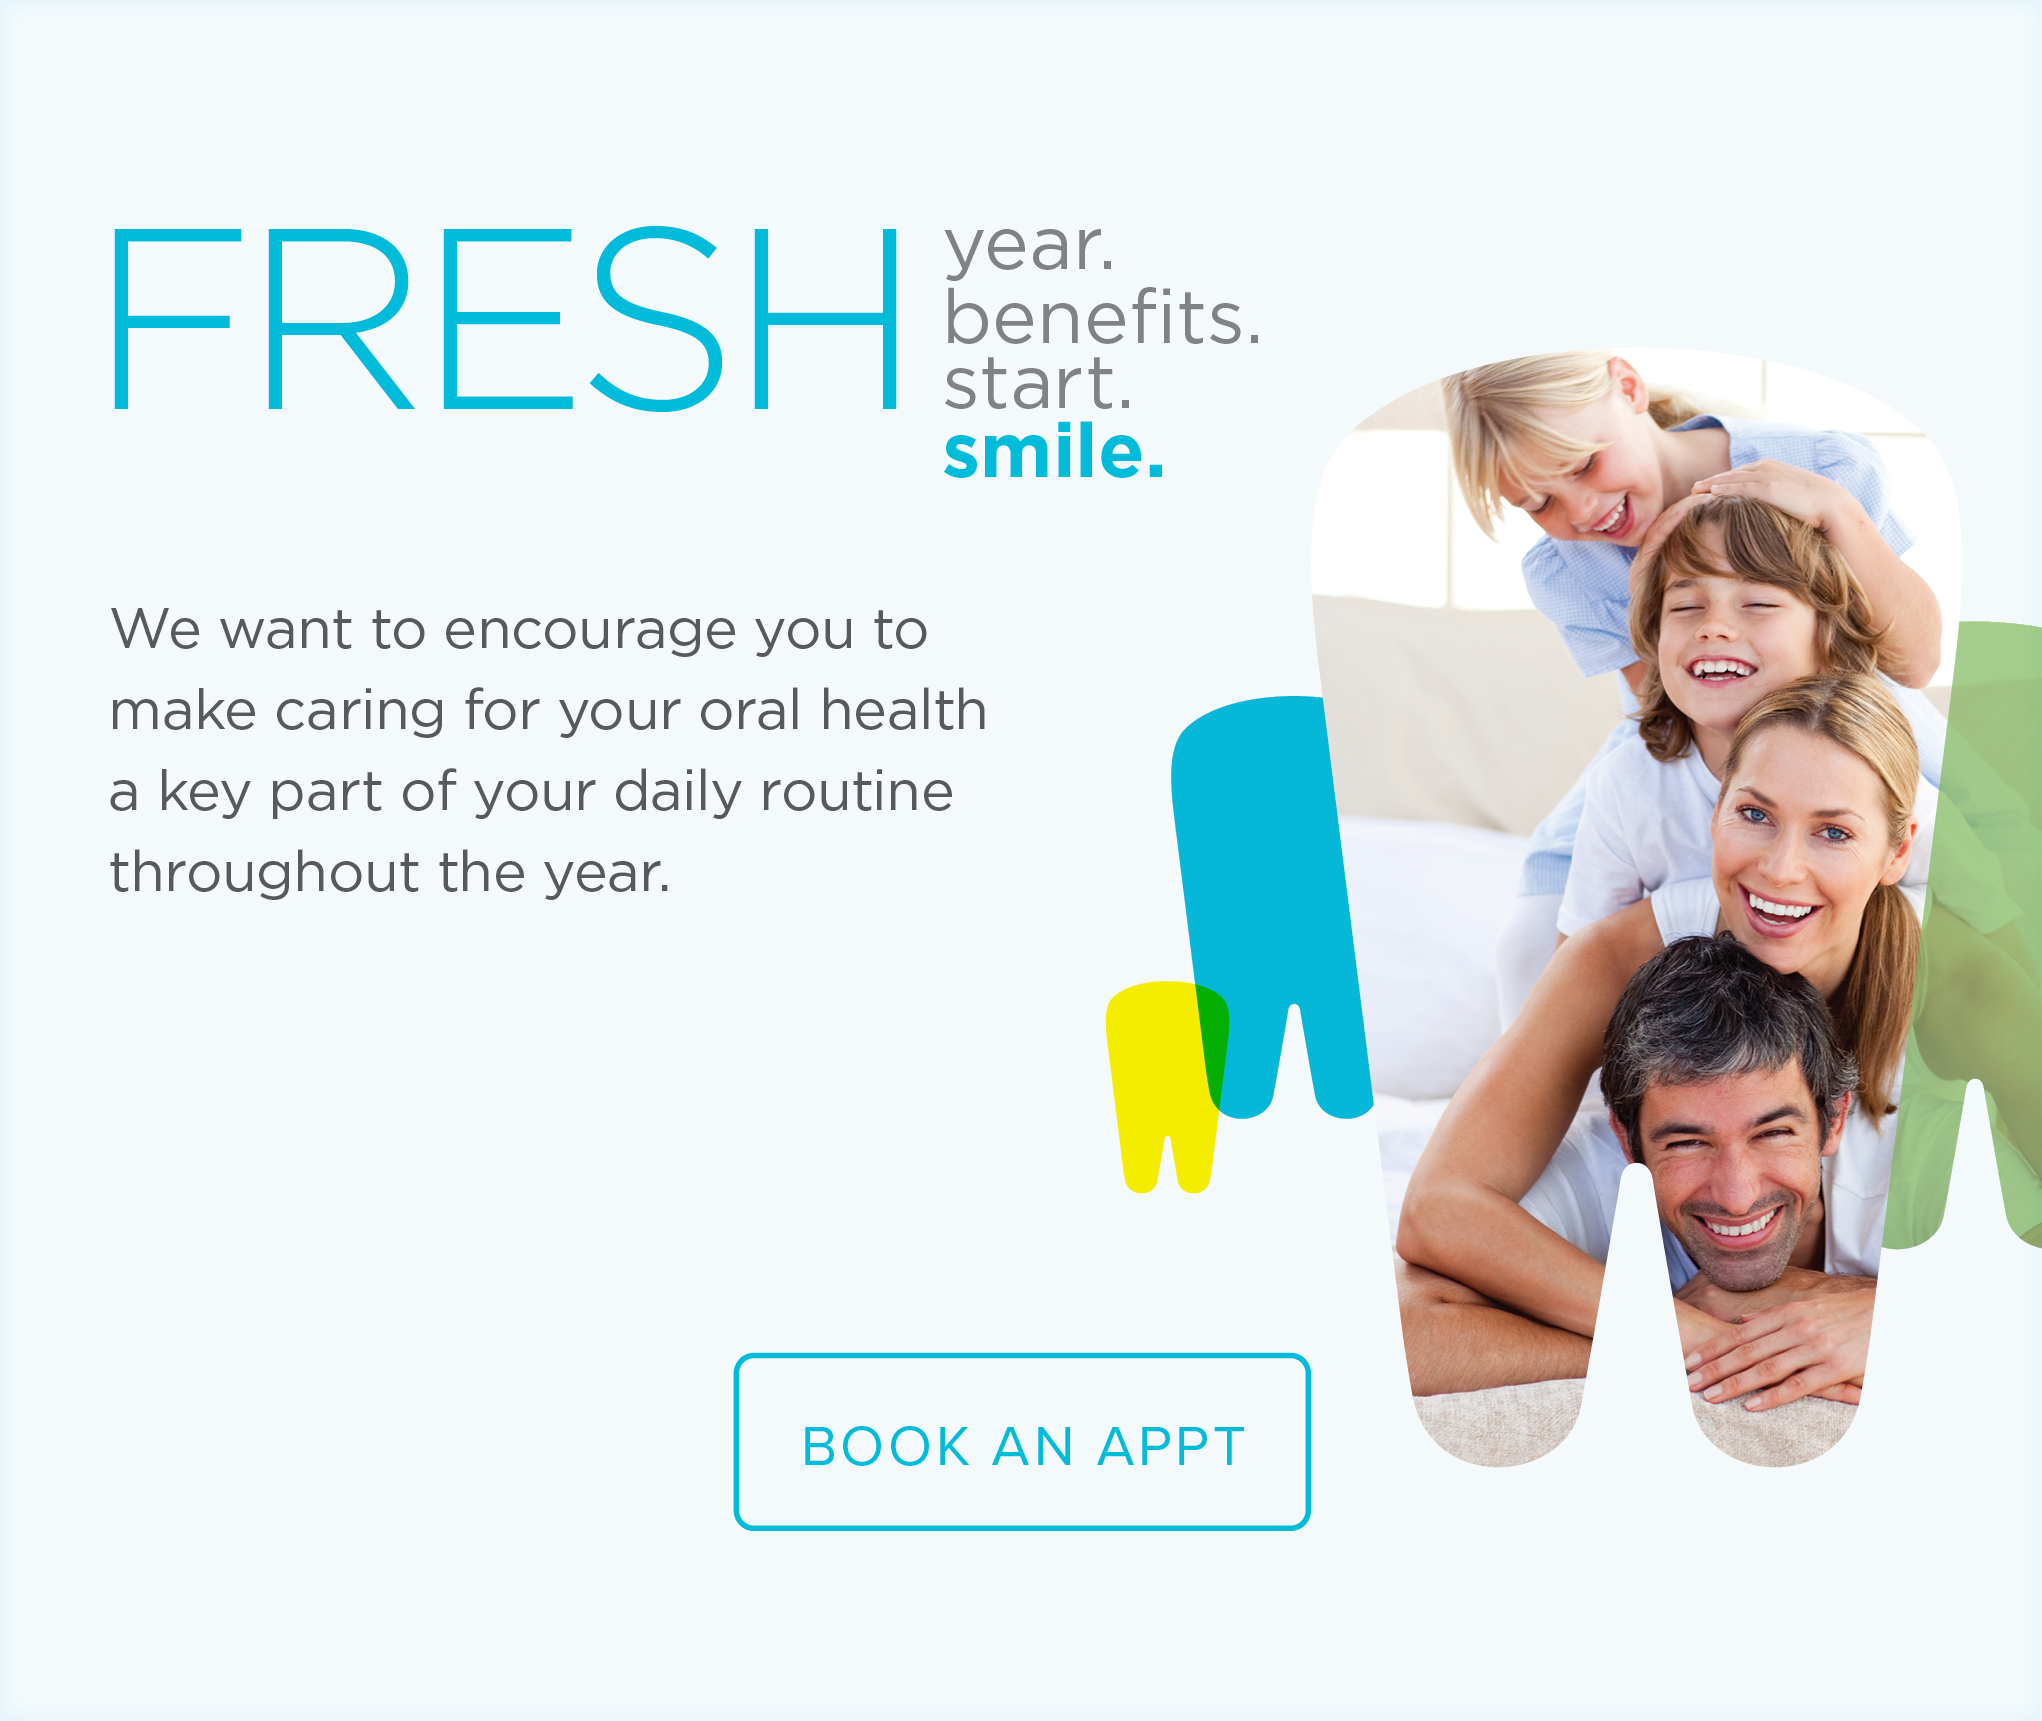 Monrovia Modern Dentistry - Make the Most of Your Benefits